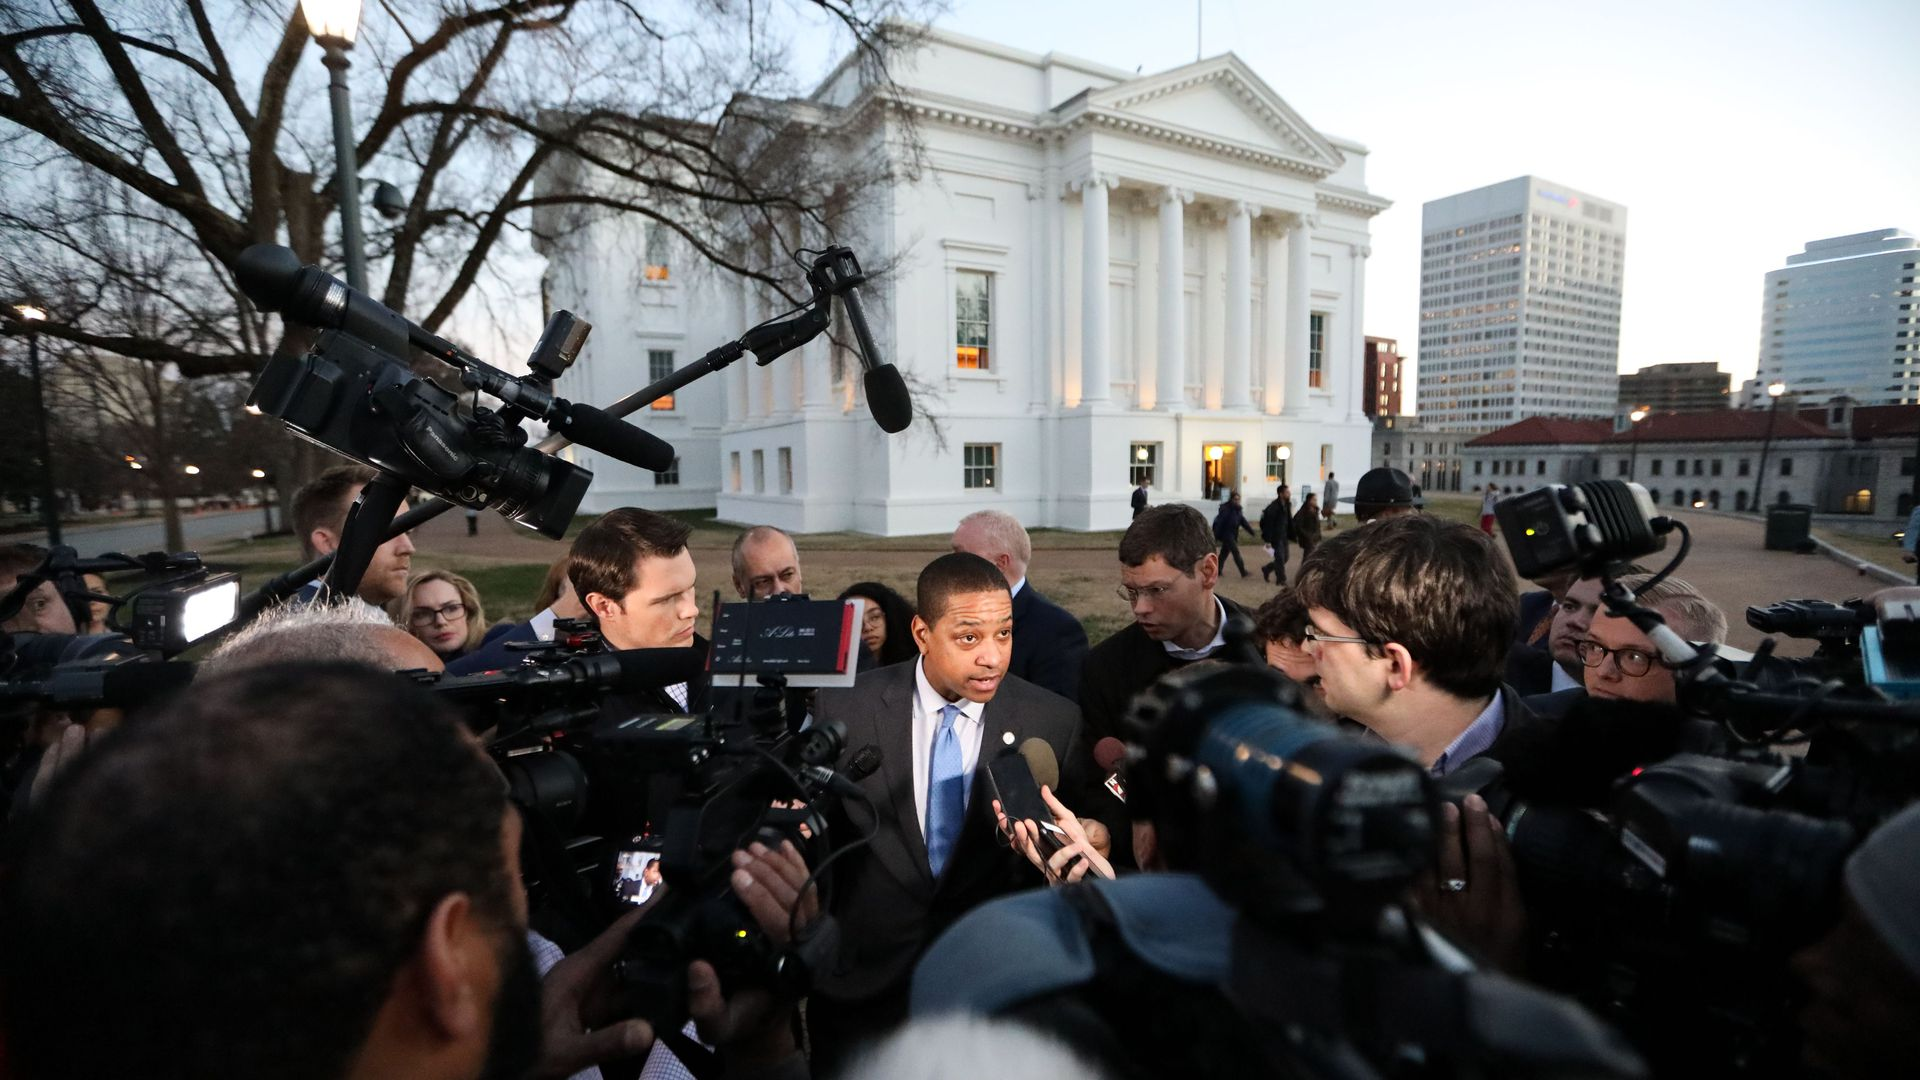 Justin Fairfax interviewed by swarm of reporters